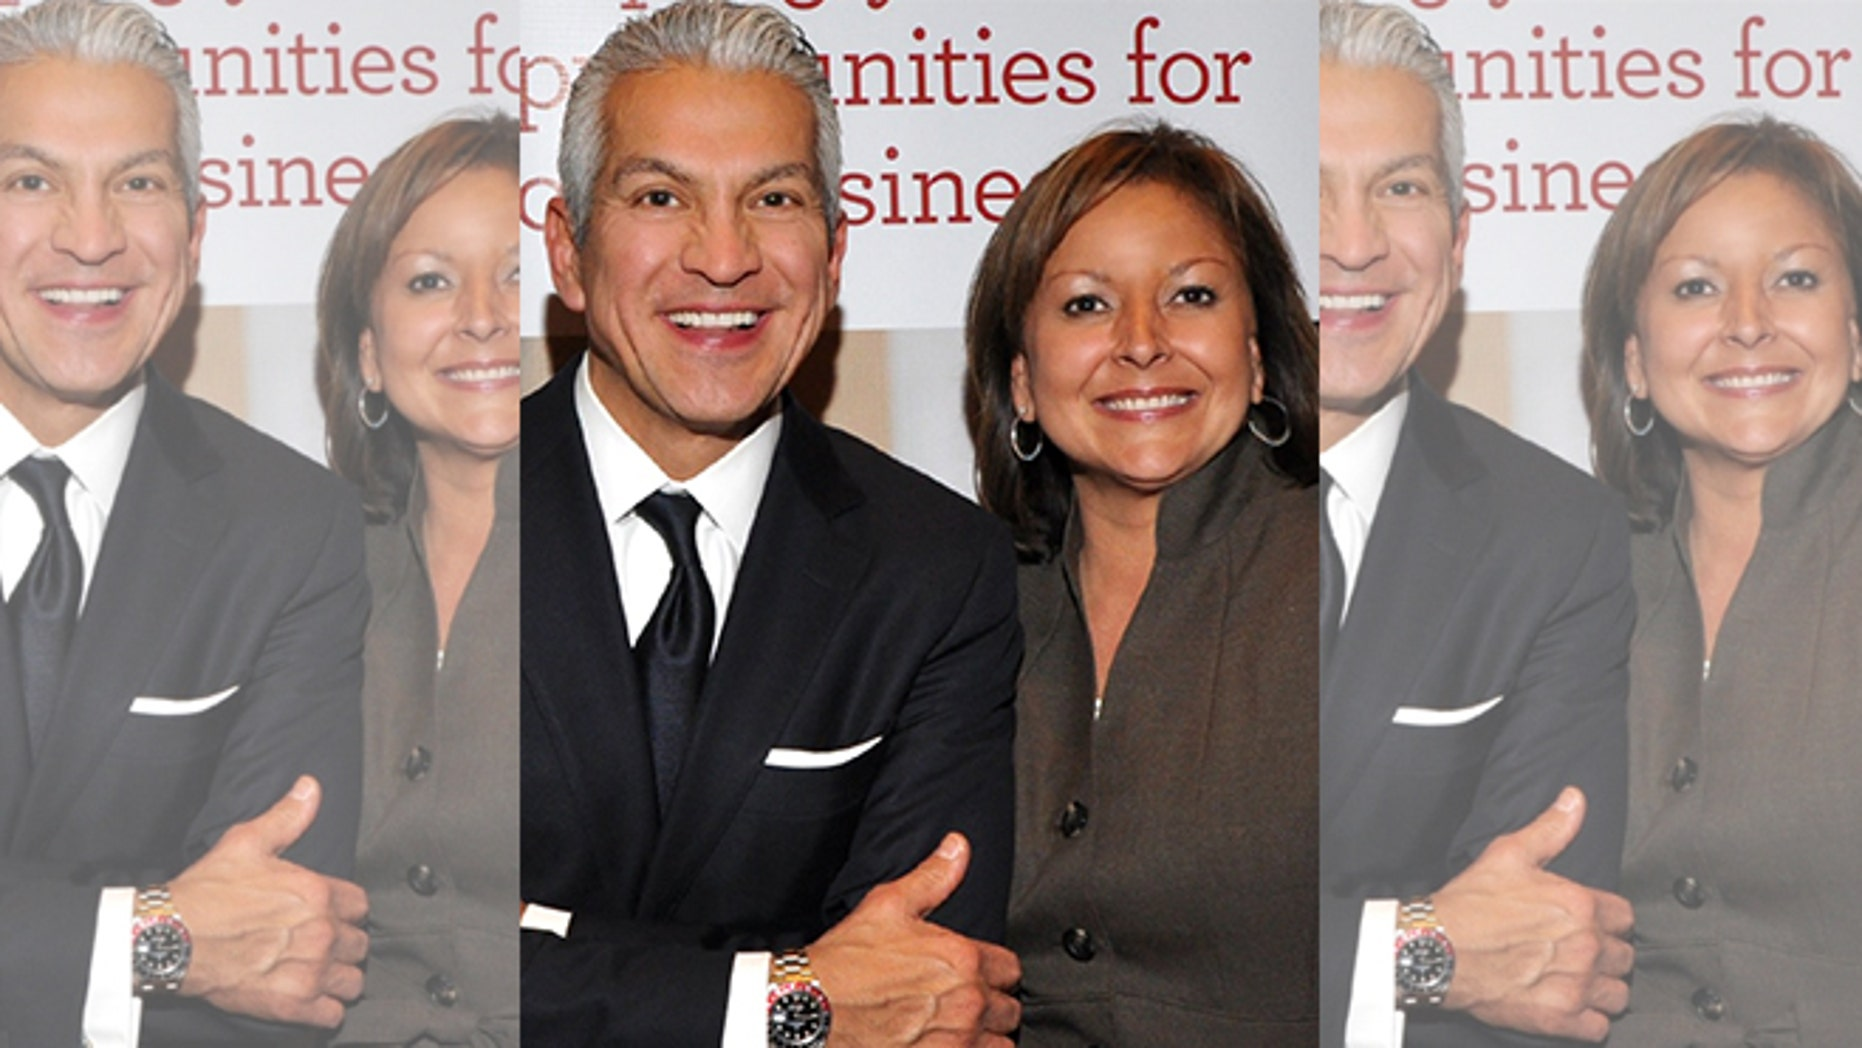 CEO and President of the U.S. Hispanic Chamber of Commerce Javier Palomarez and New Mexico Governor Susana Martinez.